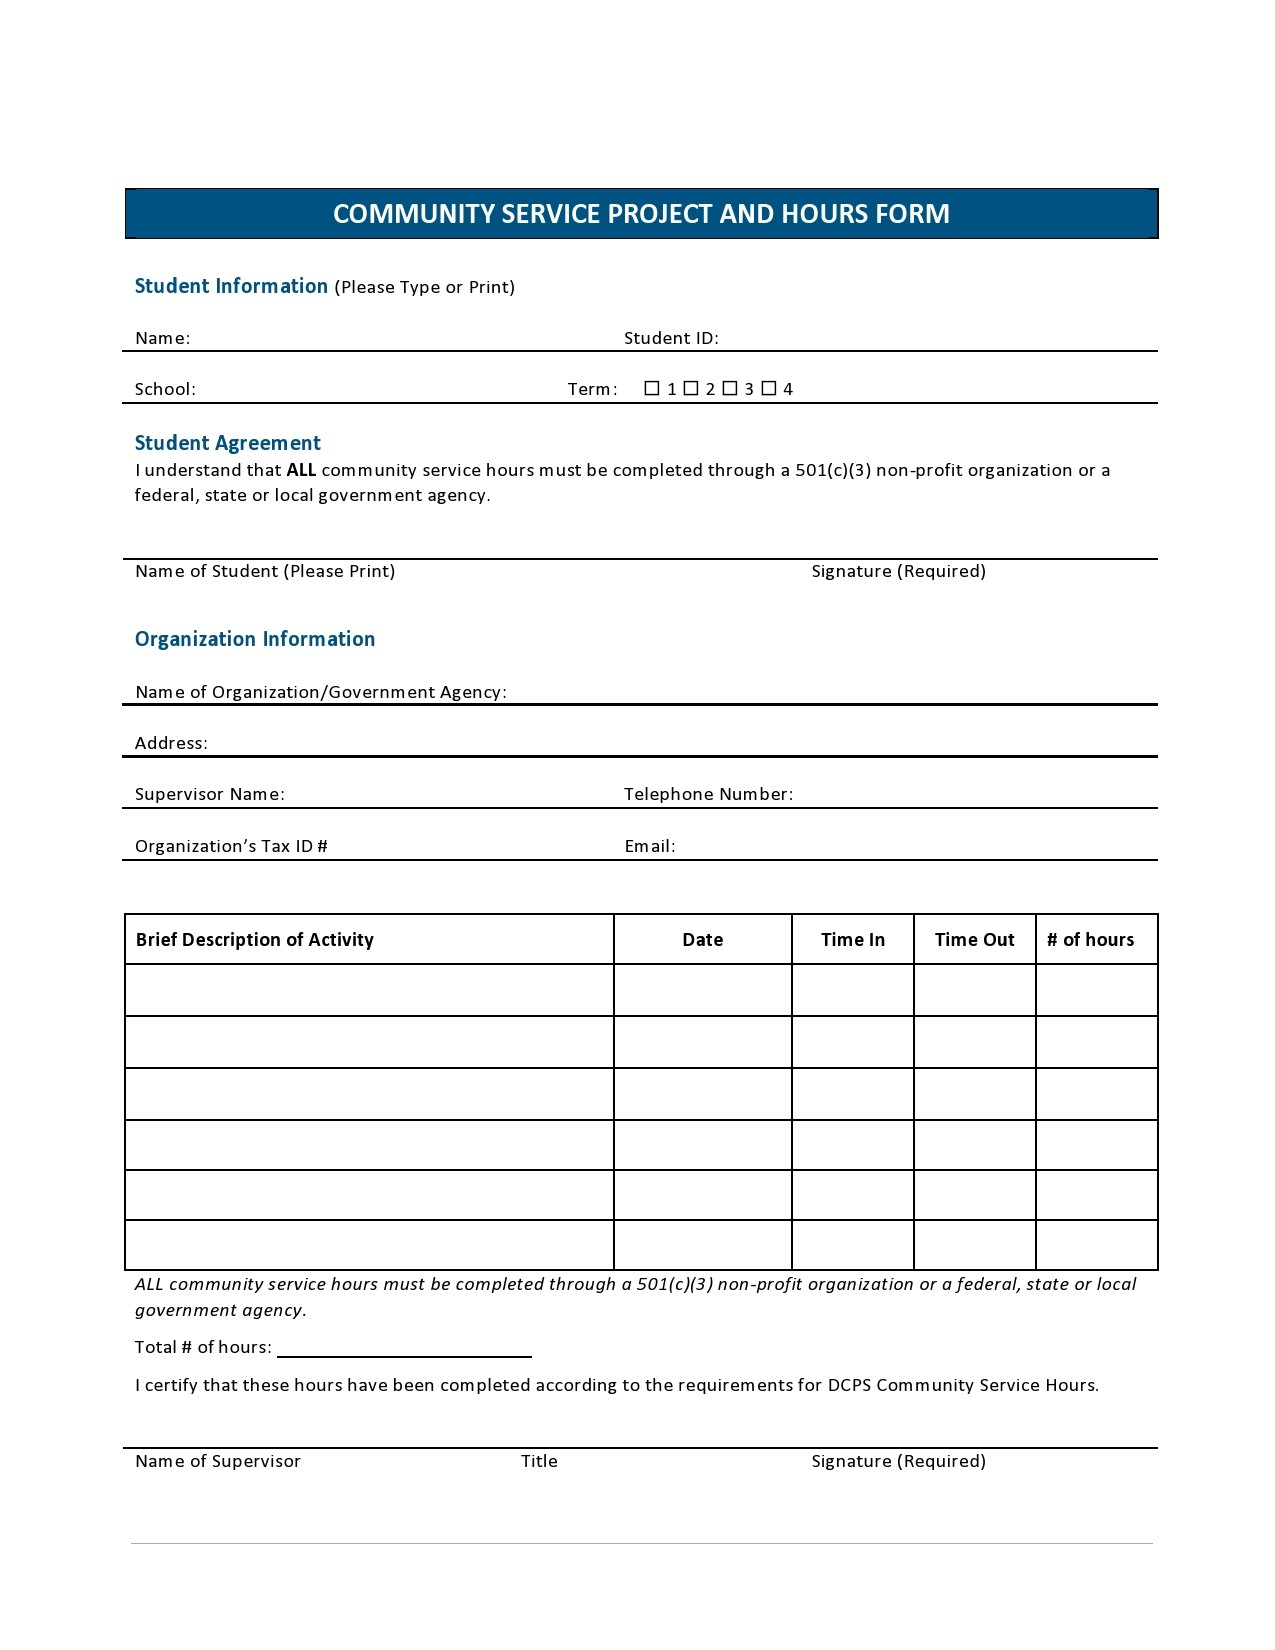 Community Service Forms